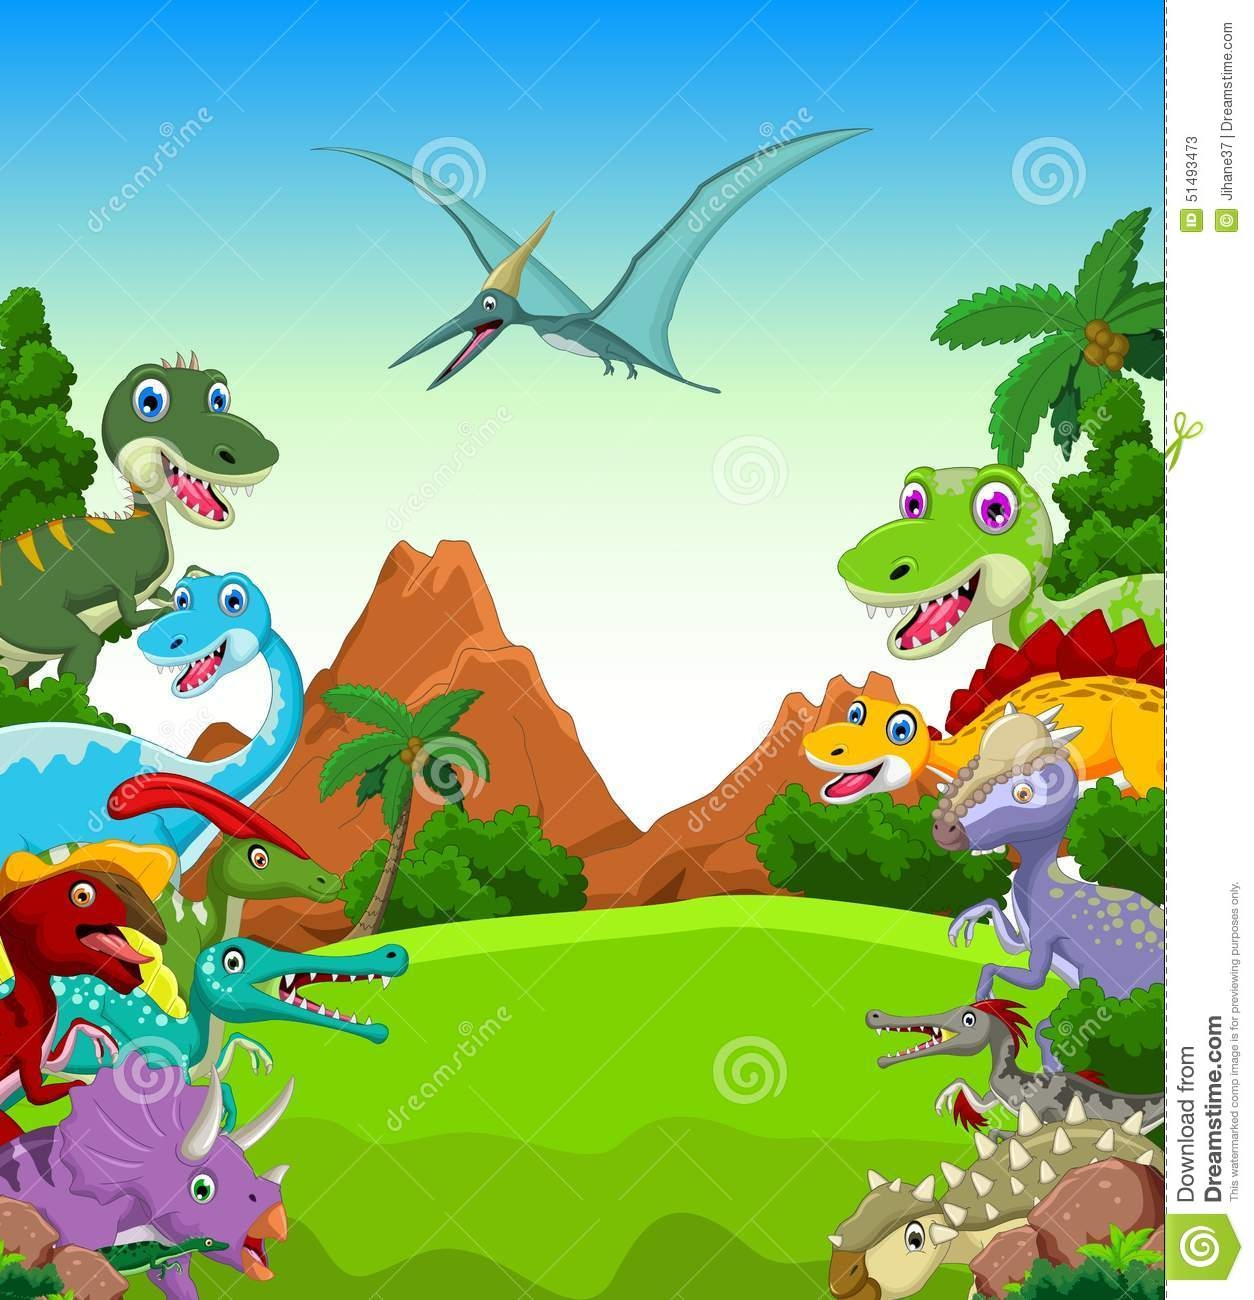 Clipart Dinosaur Wallpaper Clipart Dinosaur Wallpaper Transparent Free For Download On Webstockreview 2021